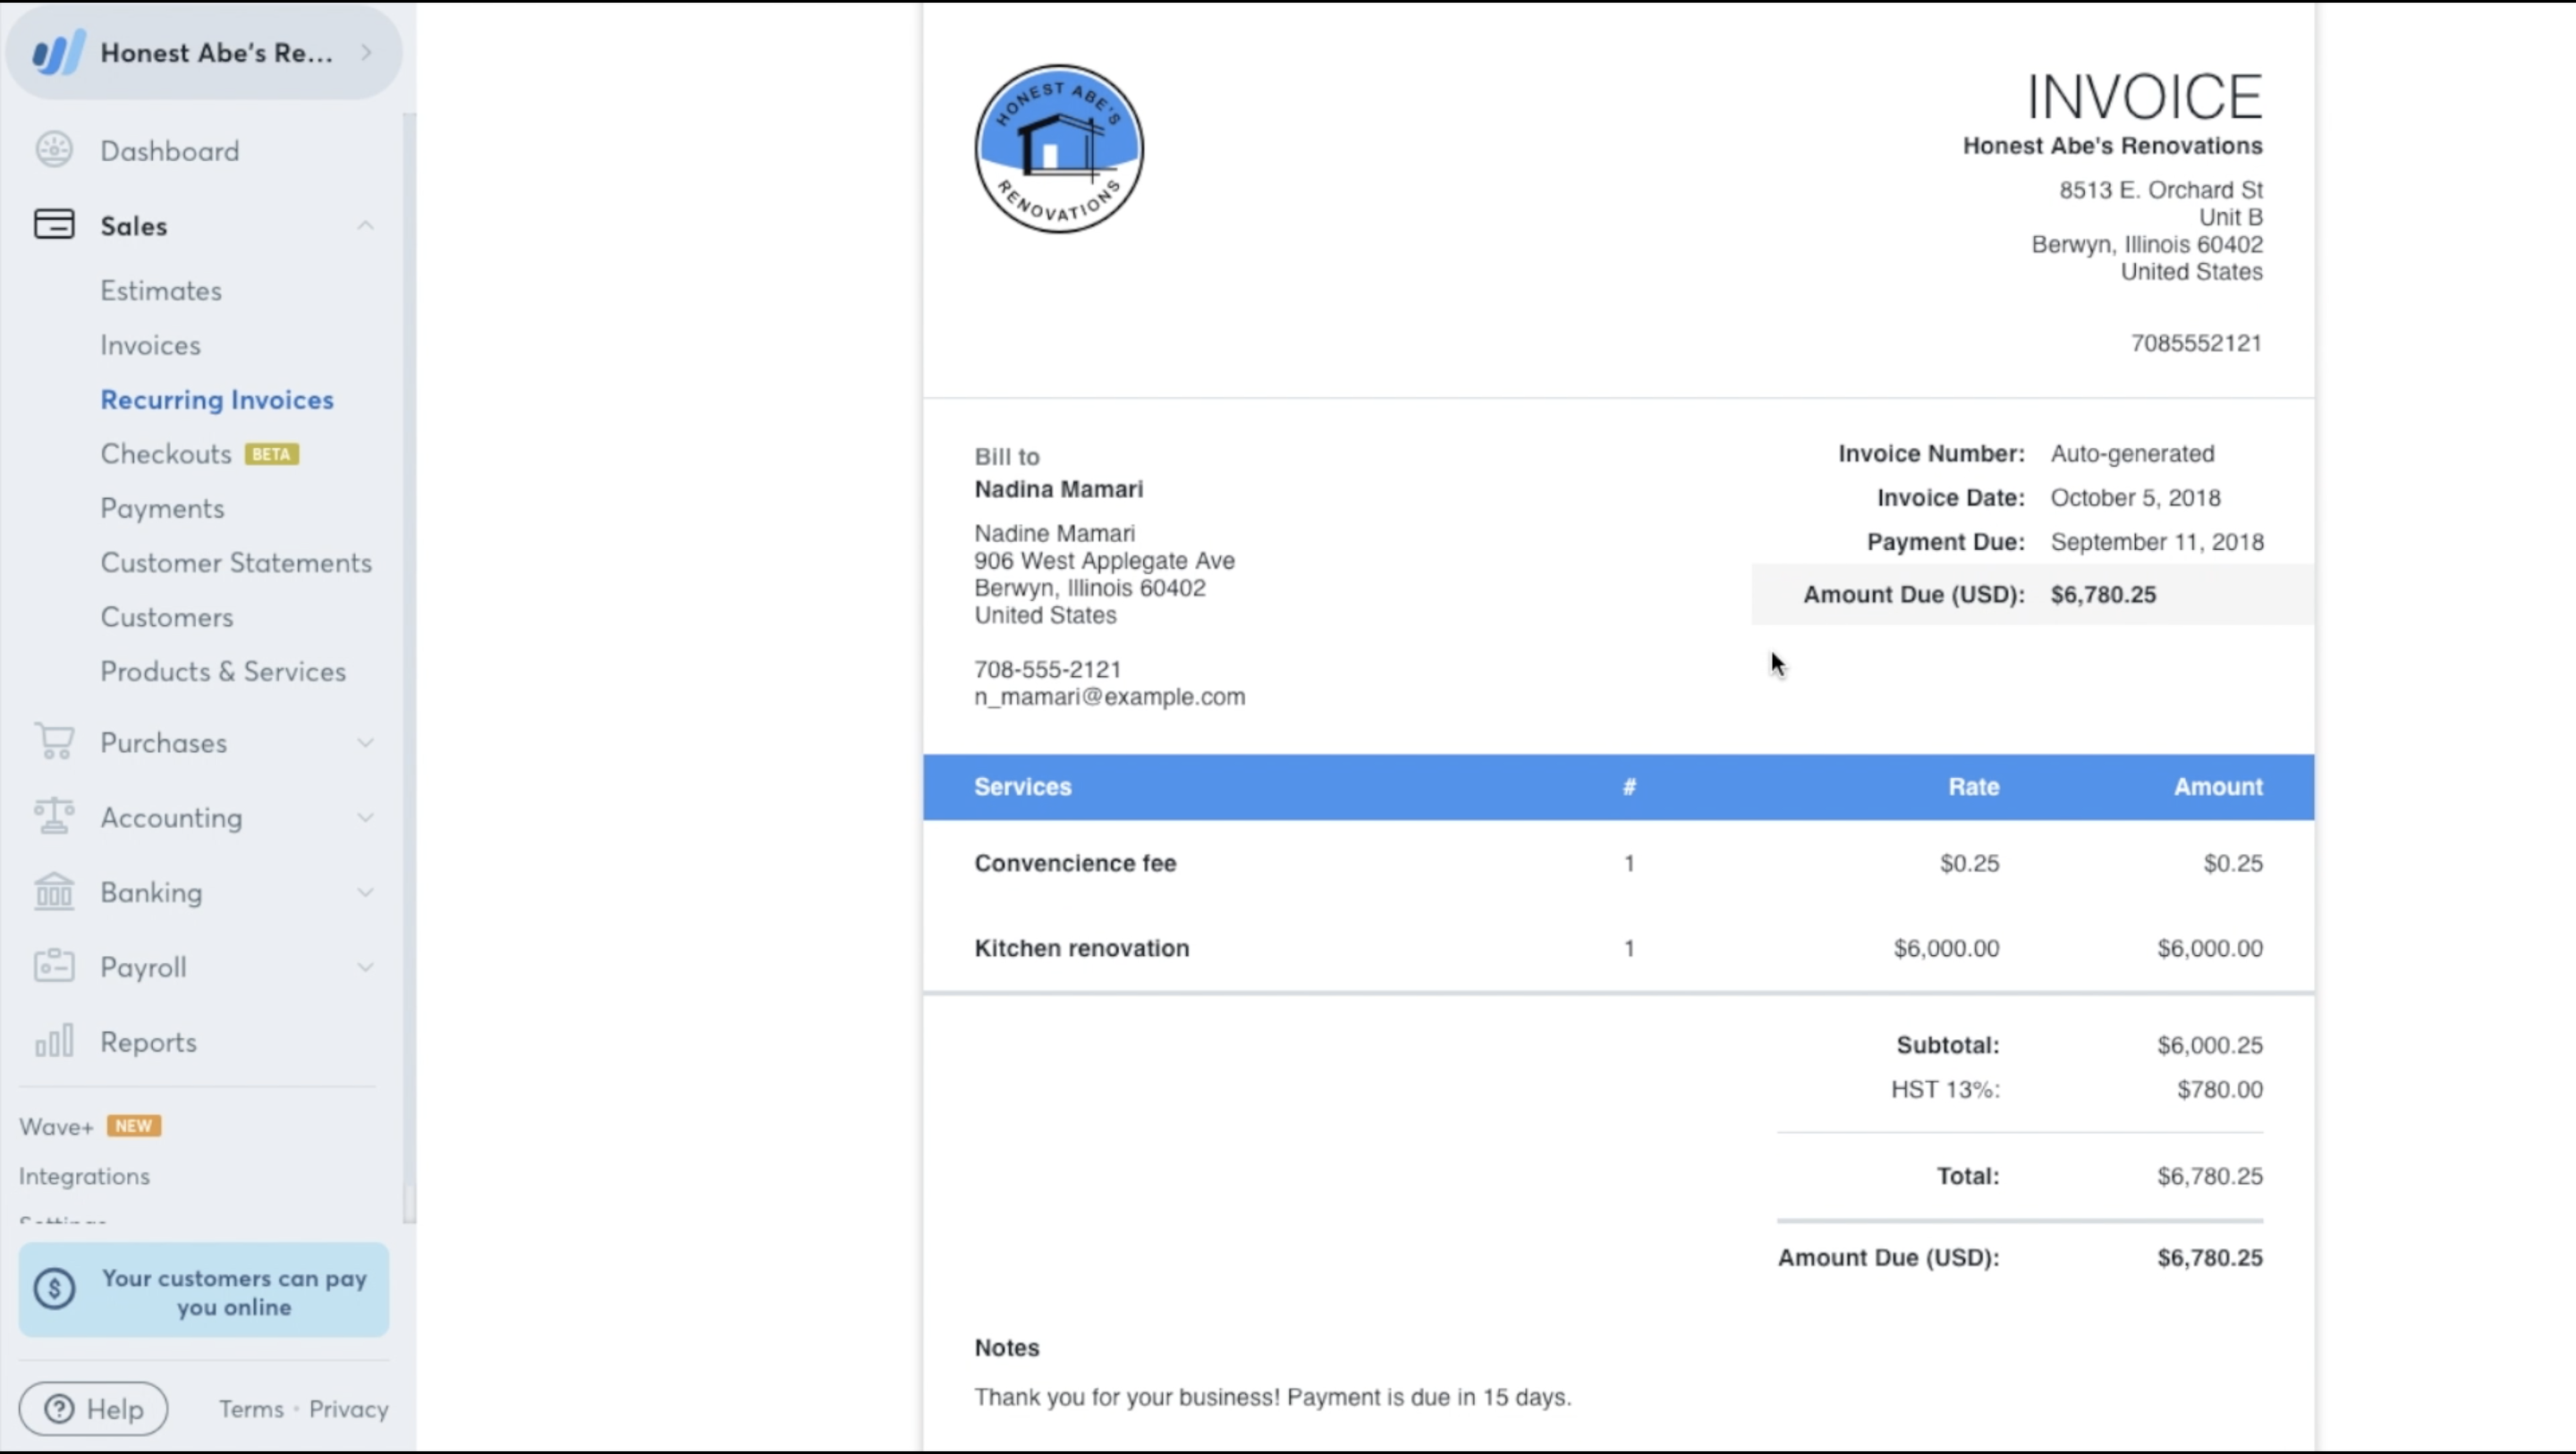 Recurring Invoices GoAutomatic With Wave Video Help Center - How to make an invoice to get paid